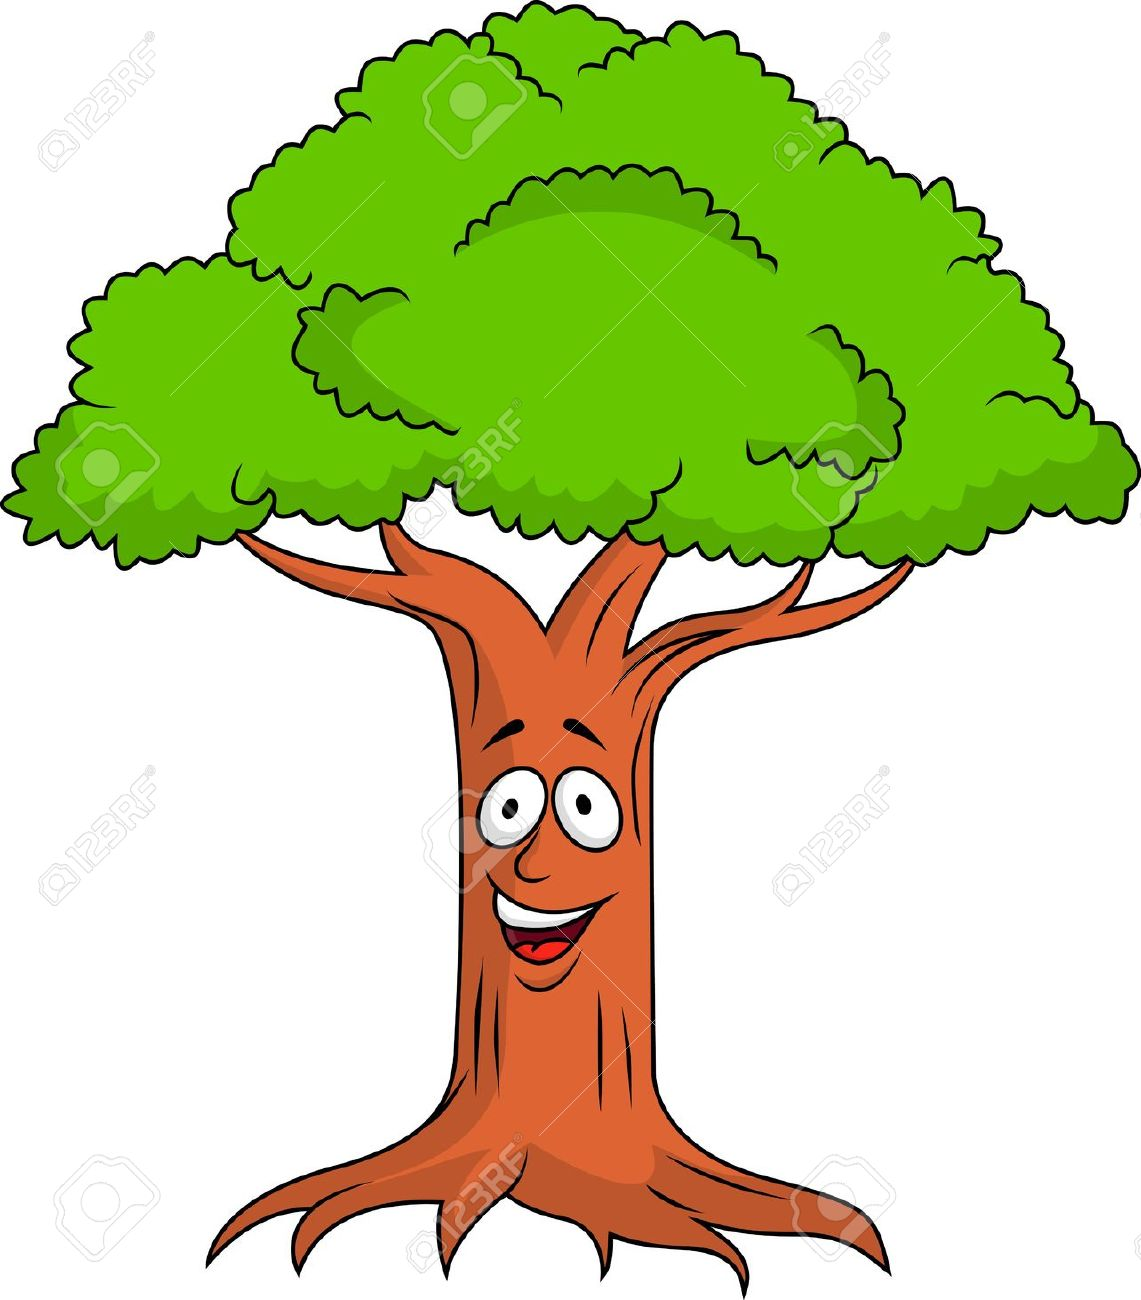 Tree face clipart 20 free Cliparts | Download images on ...